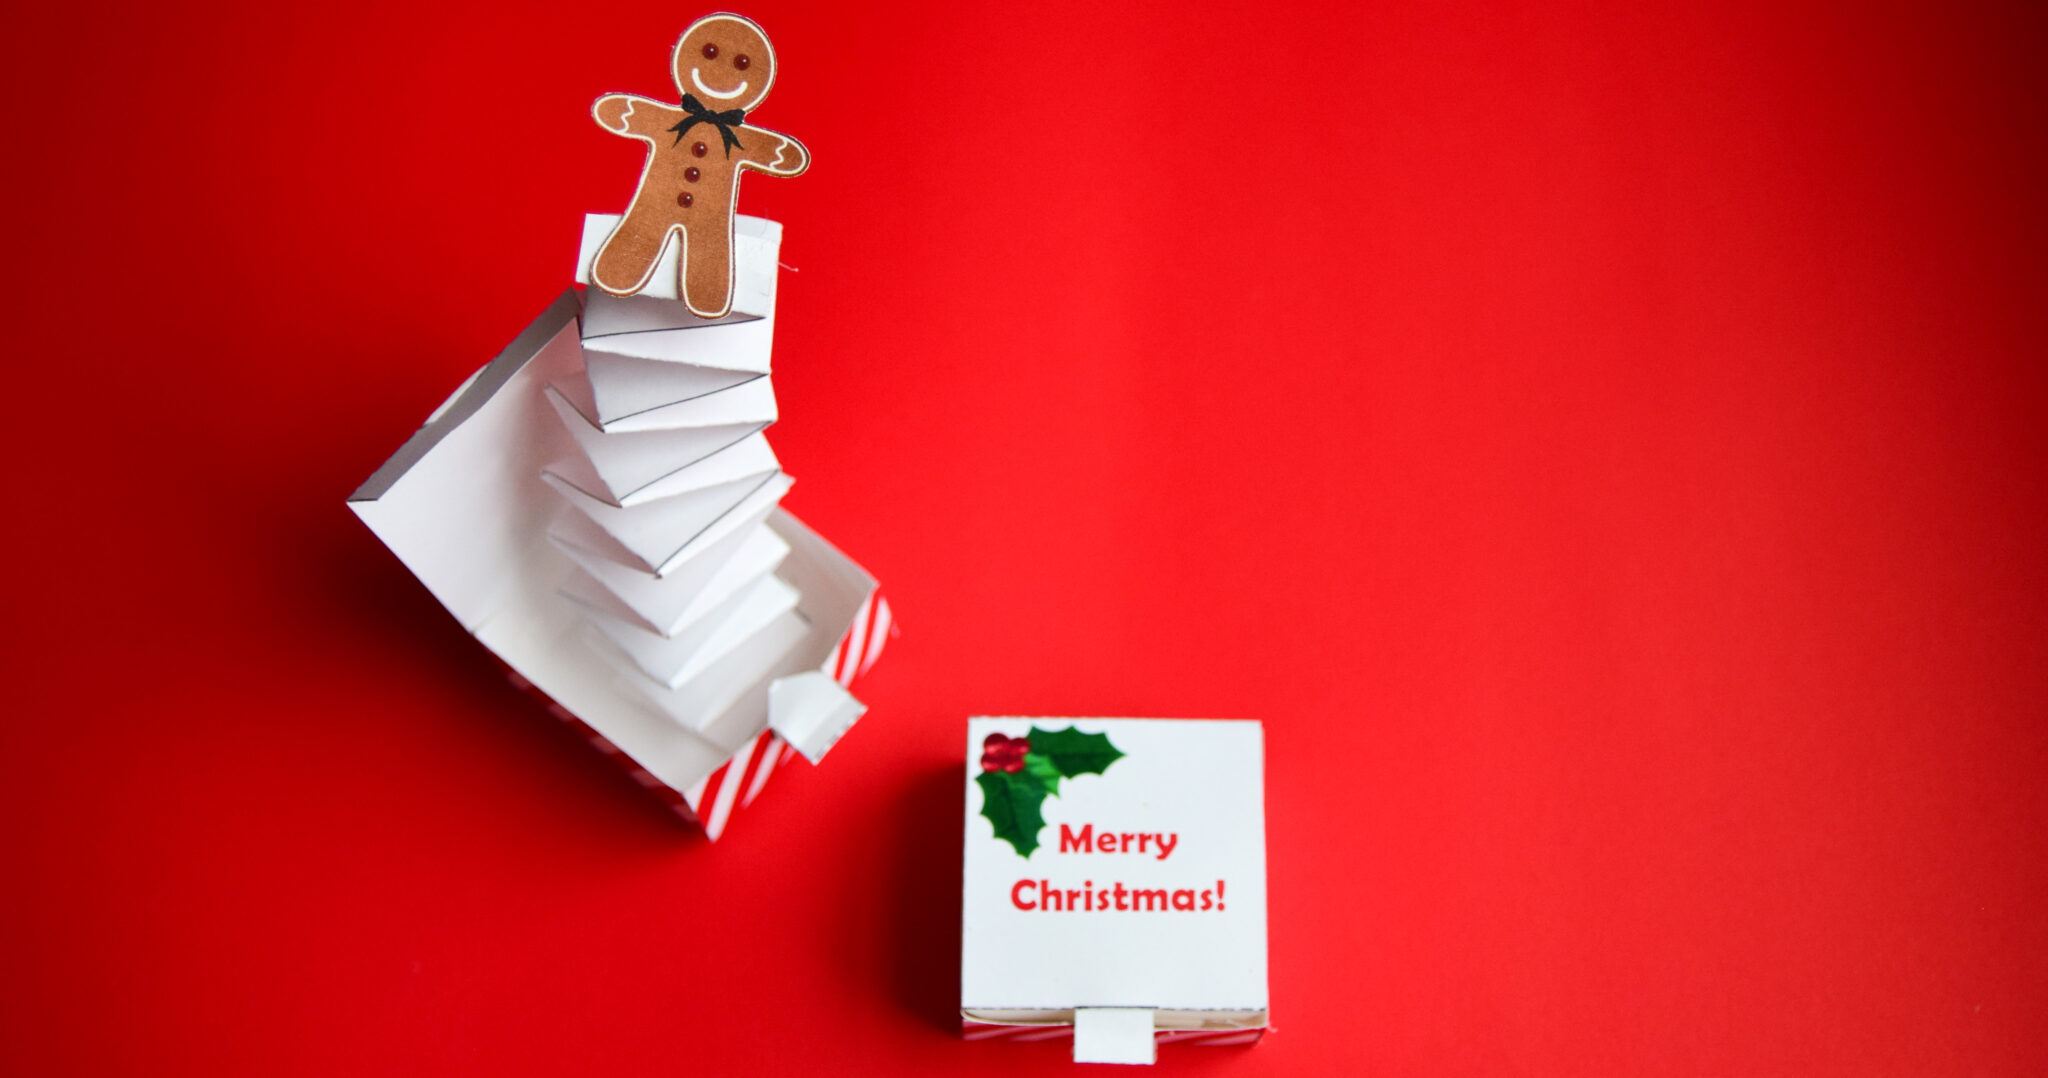 Toilet Paper Roll Gingerbread Man Craft   2179x4140